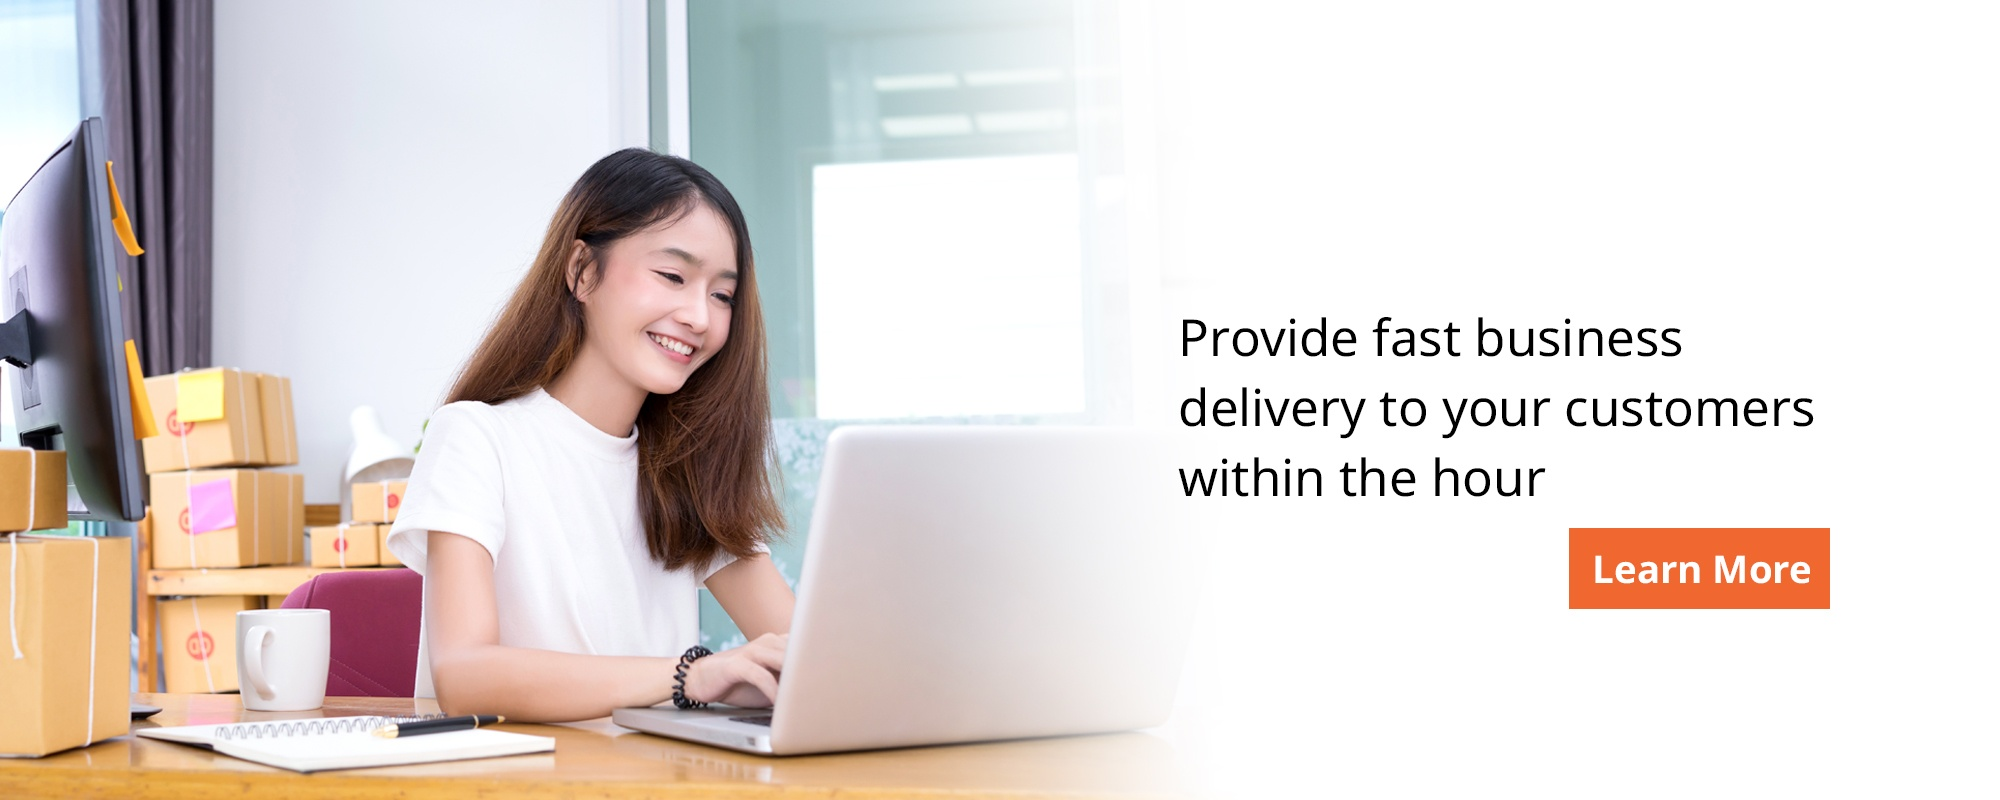 Lalamove Singapore provides fast business delivery to your customers within the hour